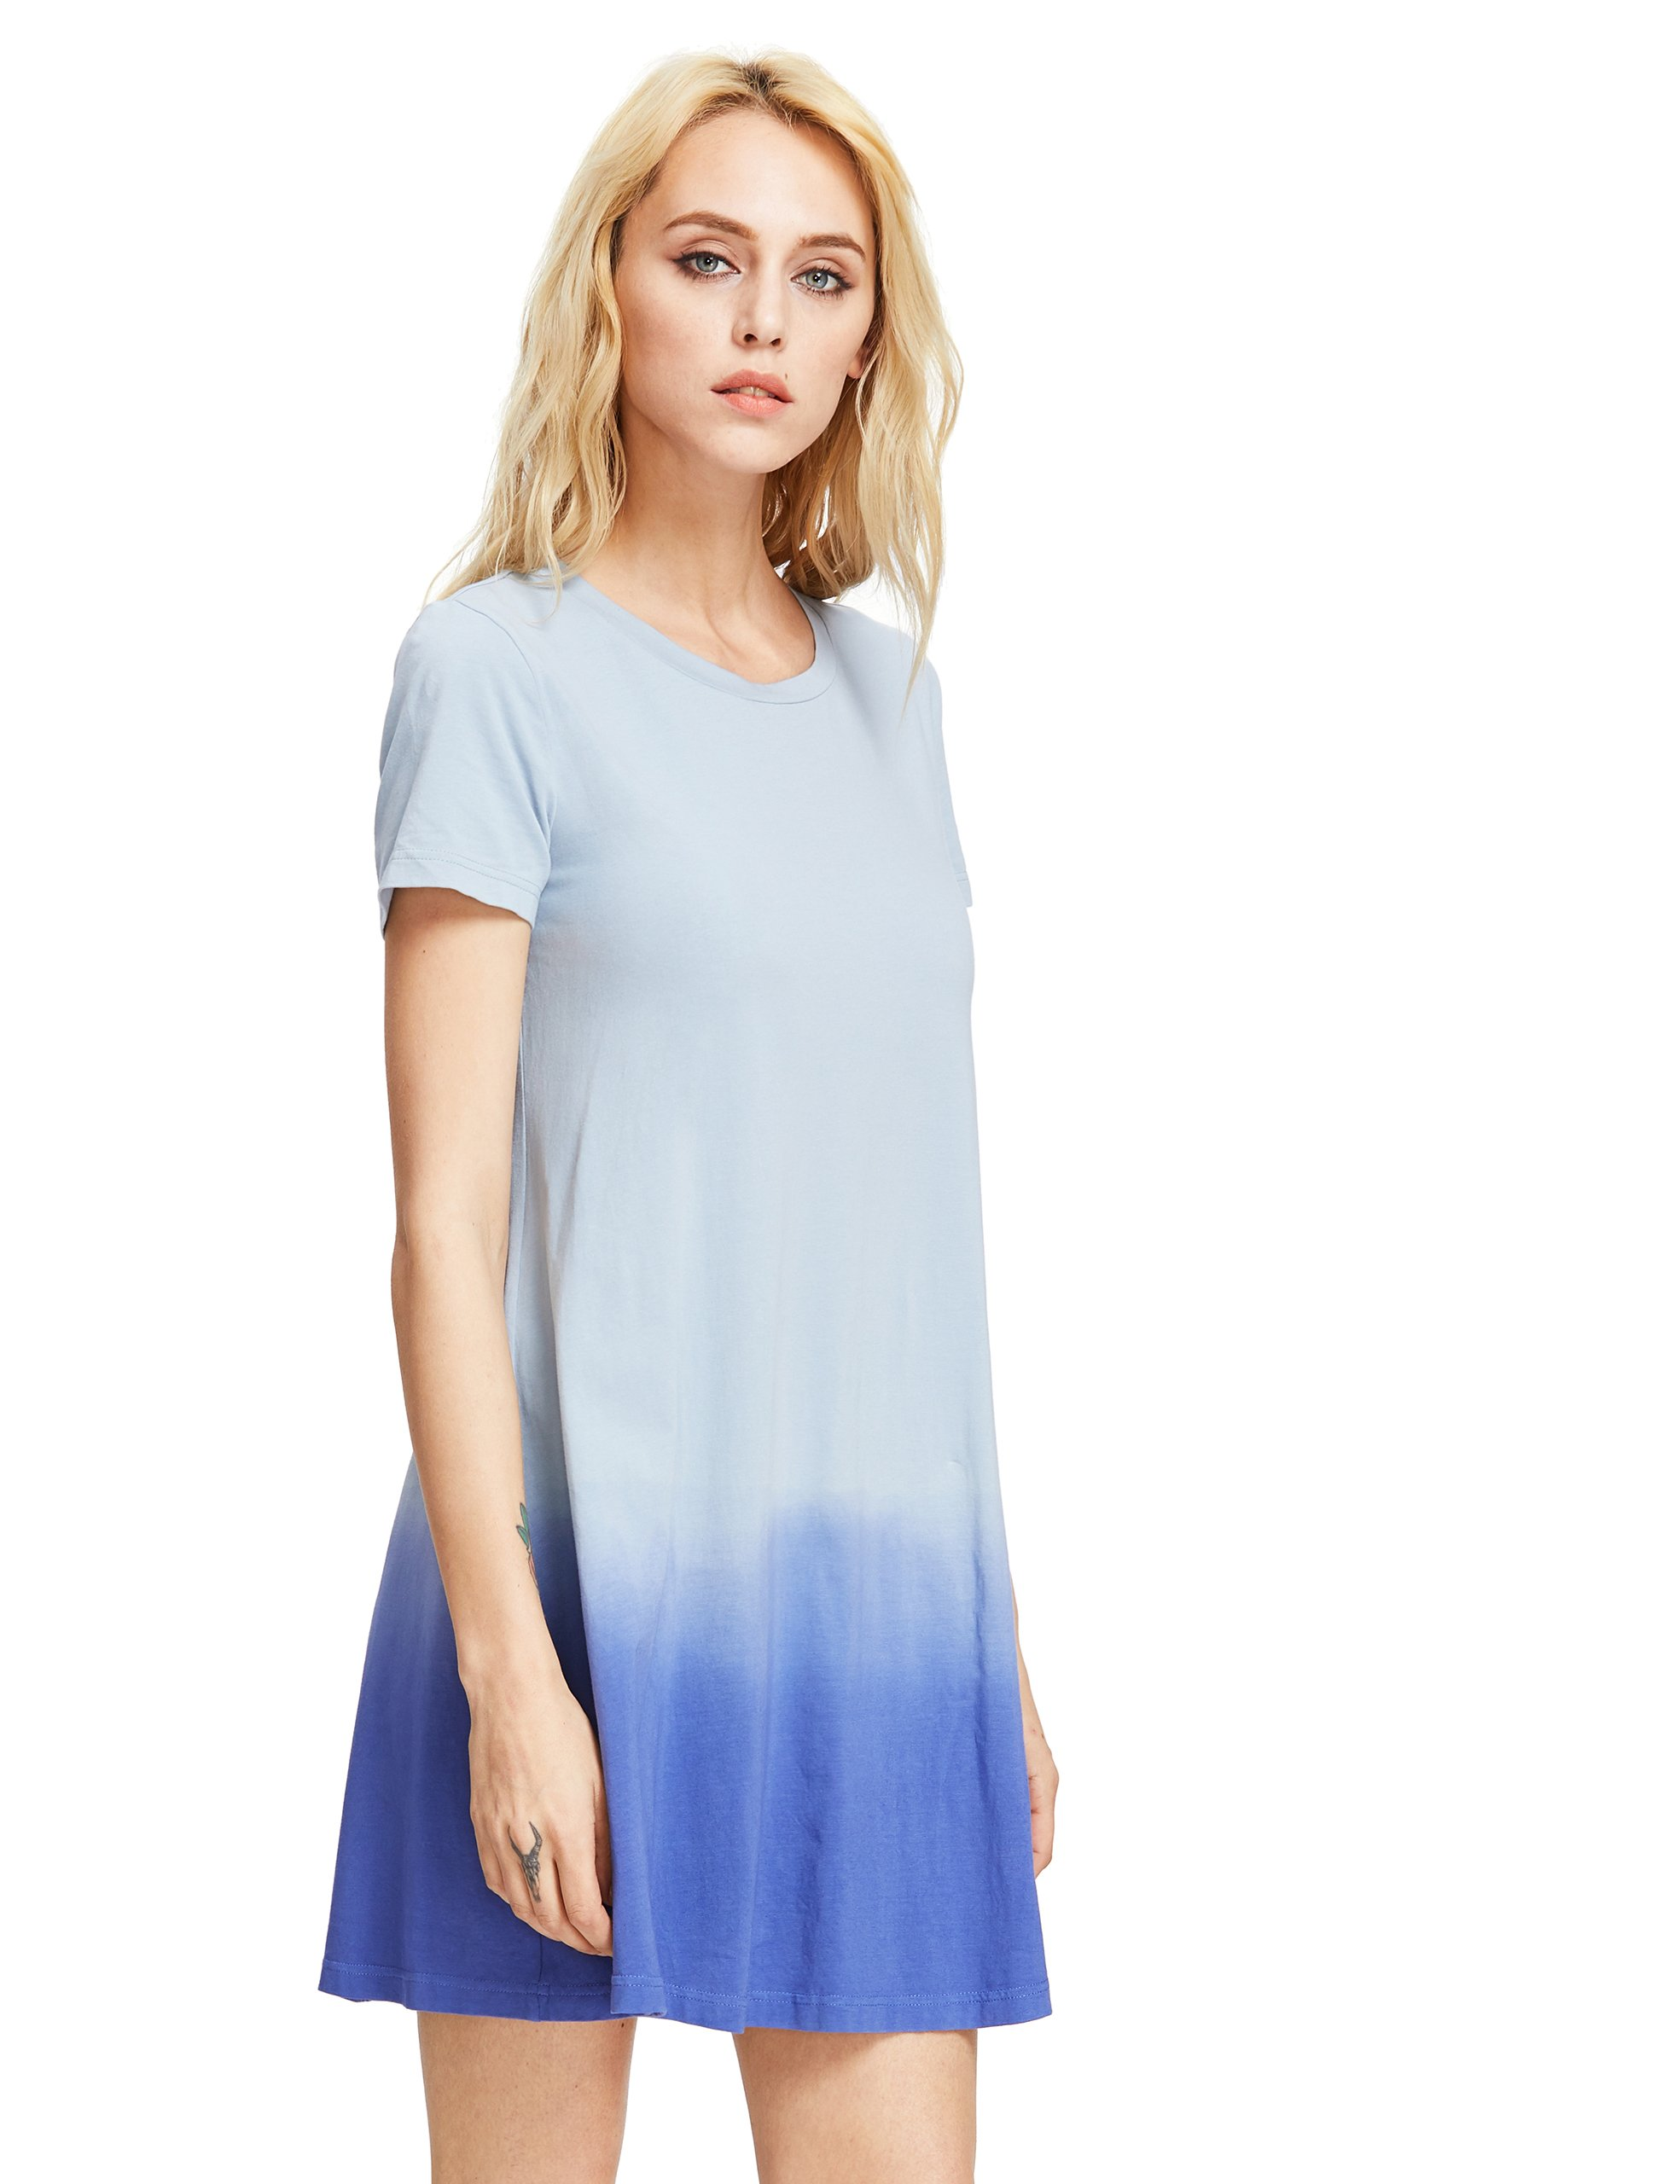 38092f5ec3fef Romwe Women's Tunic Swing T-Shirt Dress Short Sleeve Tie Dye Ombre Dress  Blue S